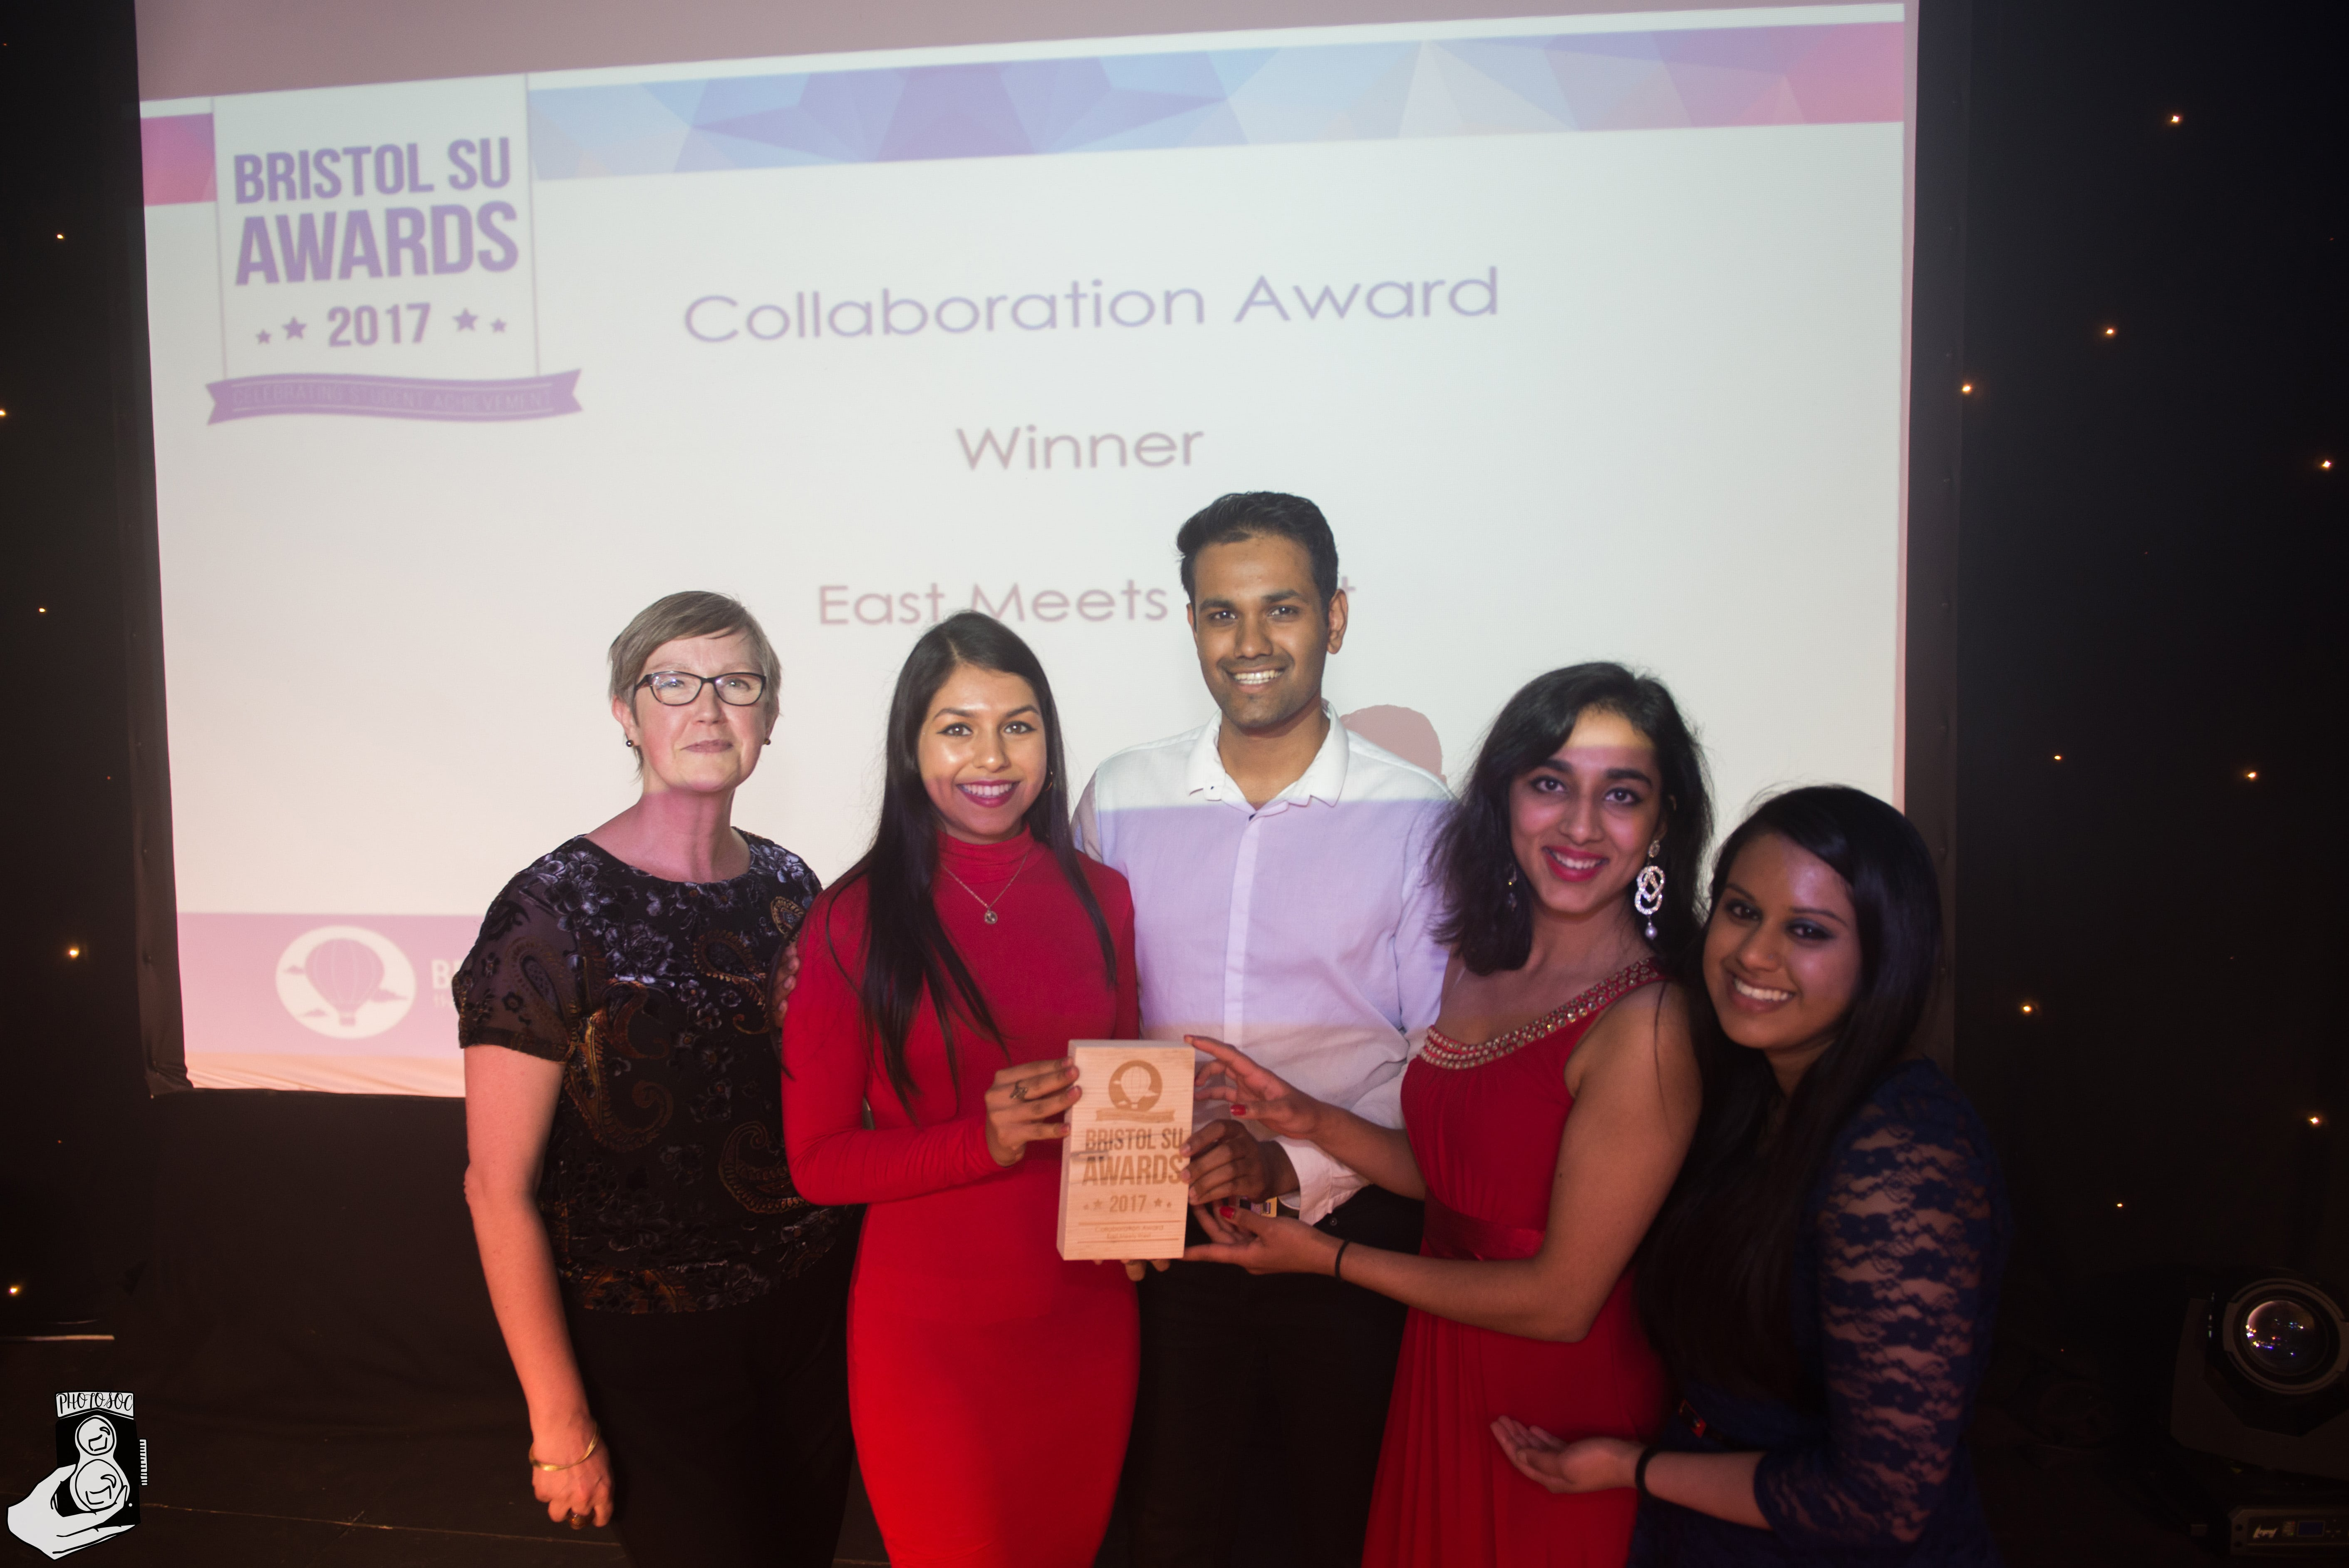 members of East Meets West winning collaboration award